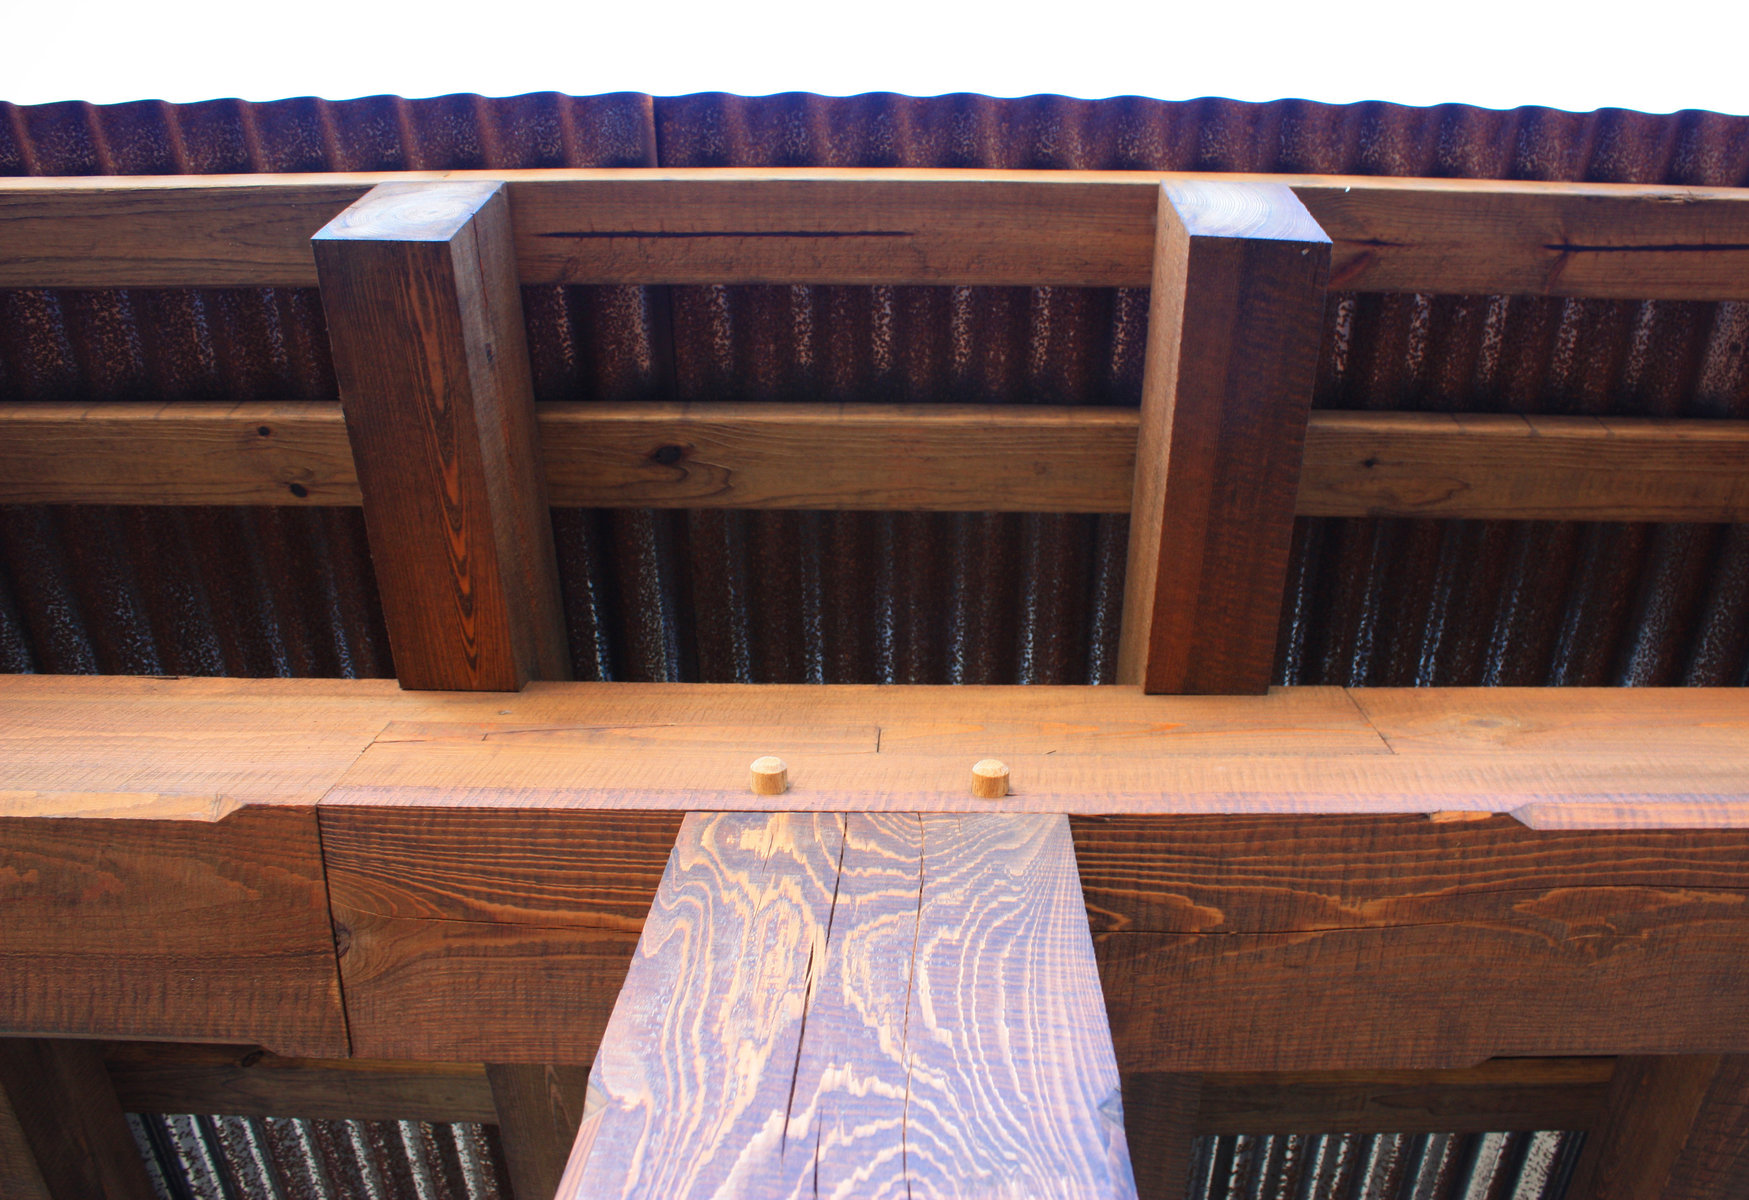 Timber framing detail